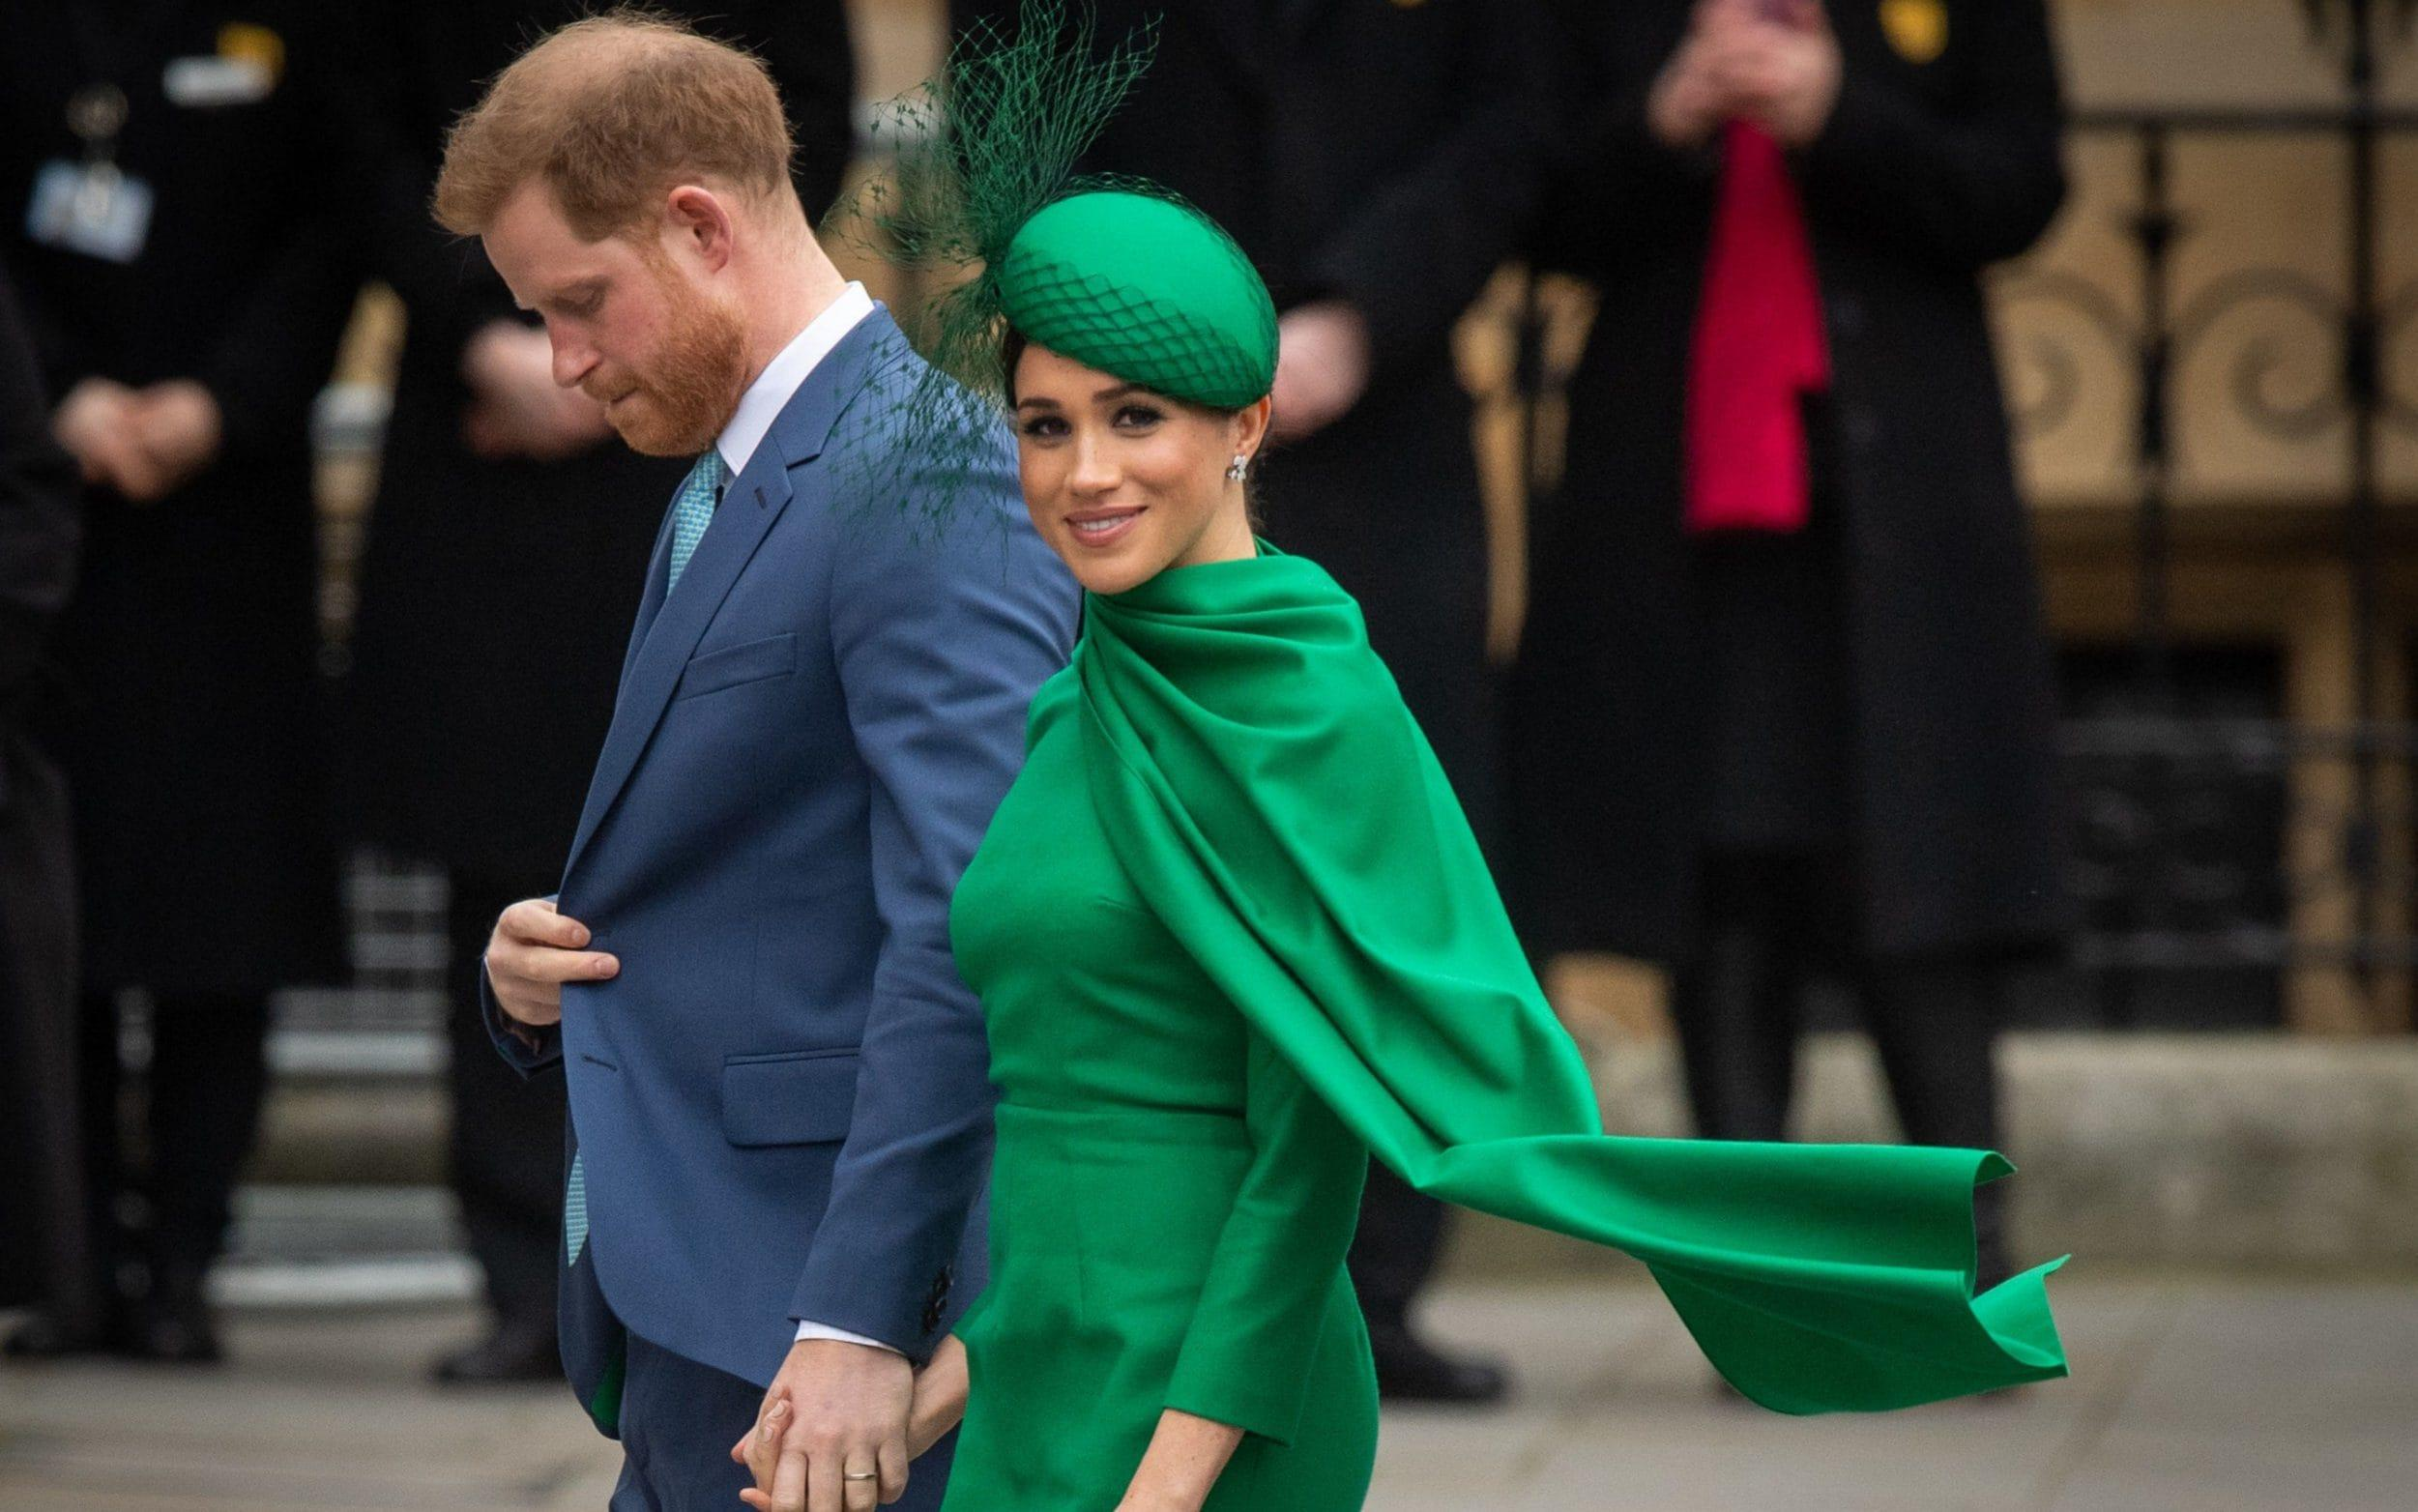 The Duke and Duchess of Sussex, wearing Emilia Wickstead, at their final public appearence as senior working royals in March - Getty